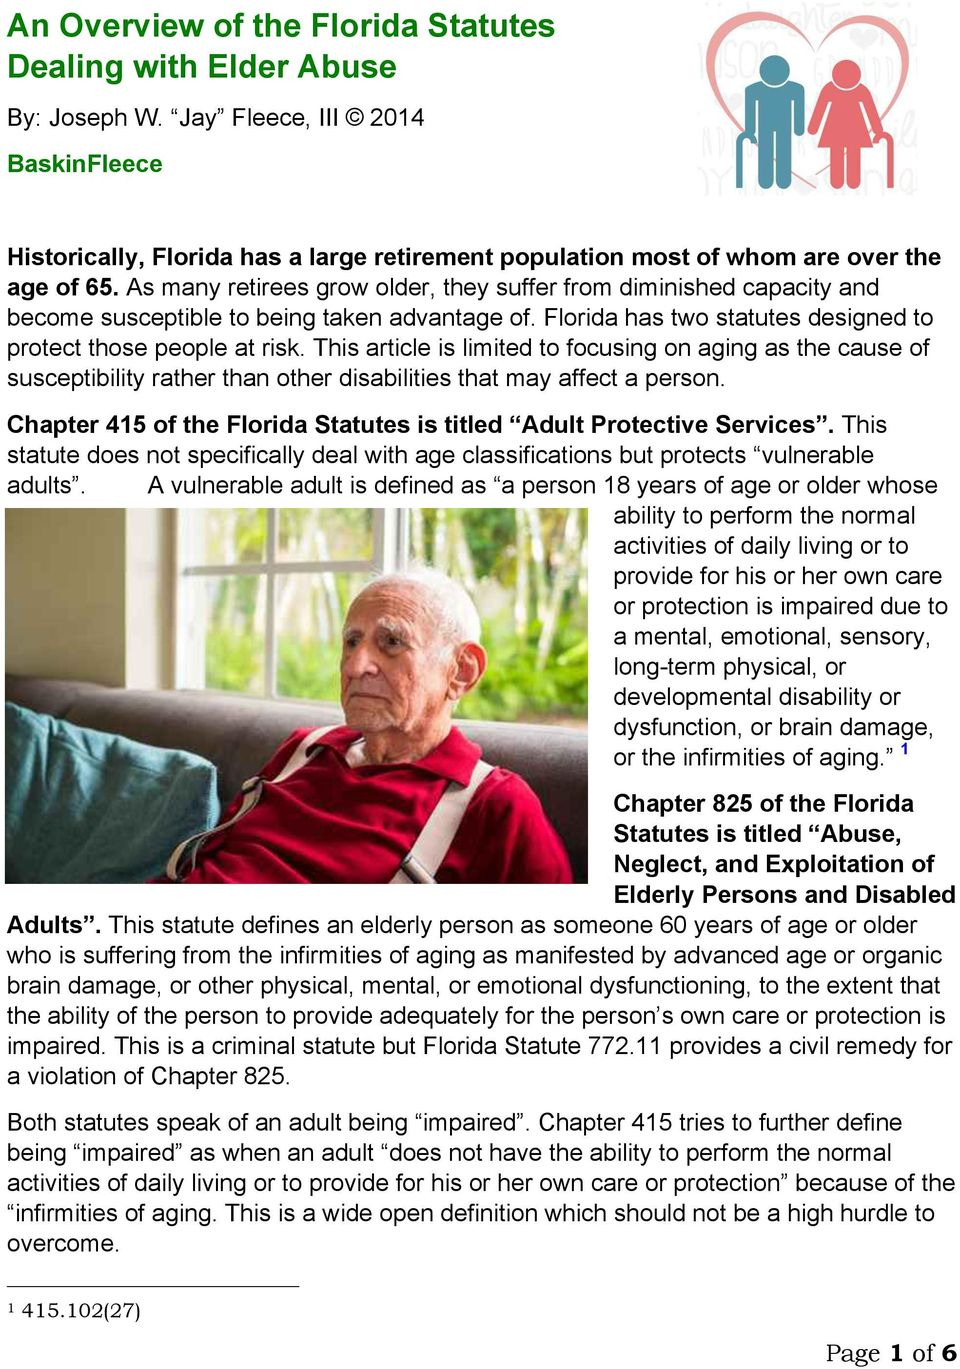 As many retirees grow older, they suffer from diminished capacity and become susceptible to being taken advantage of. Florida has two statutes designed to protect those people at risk.